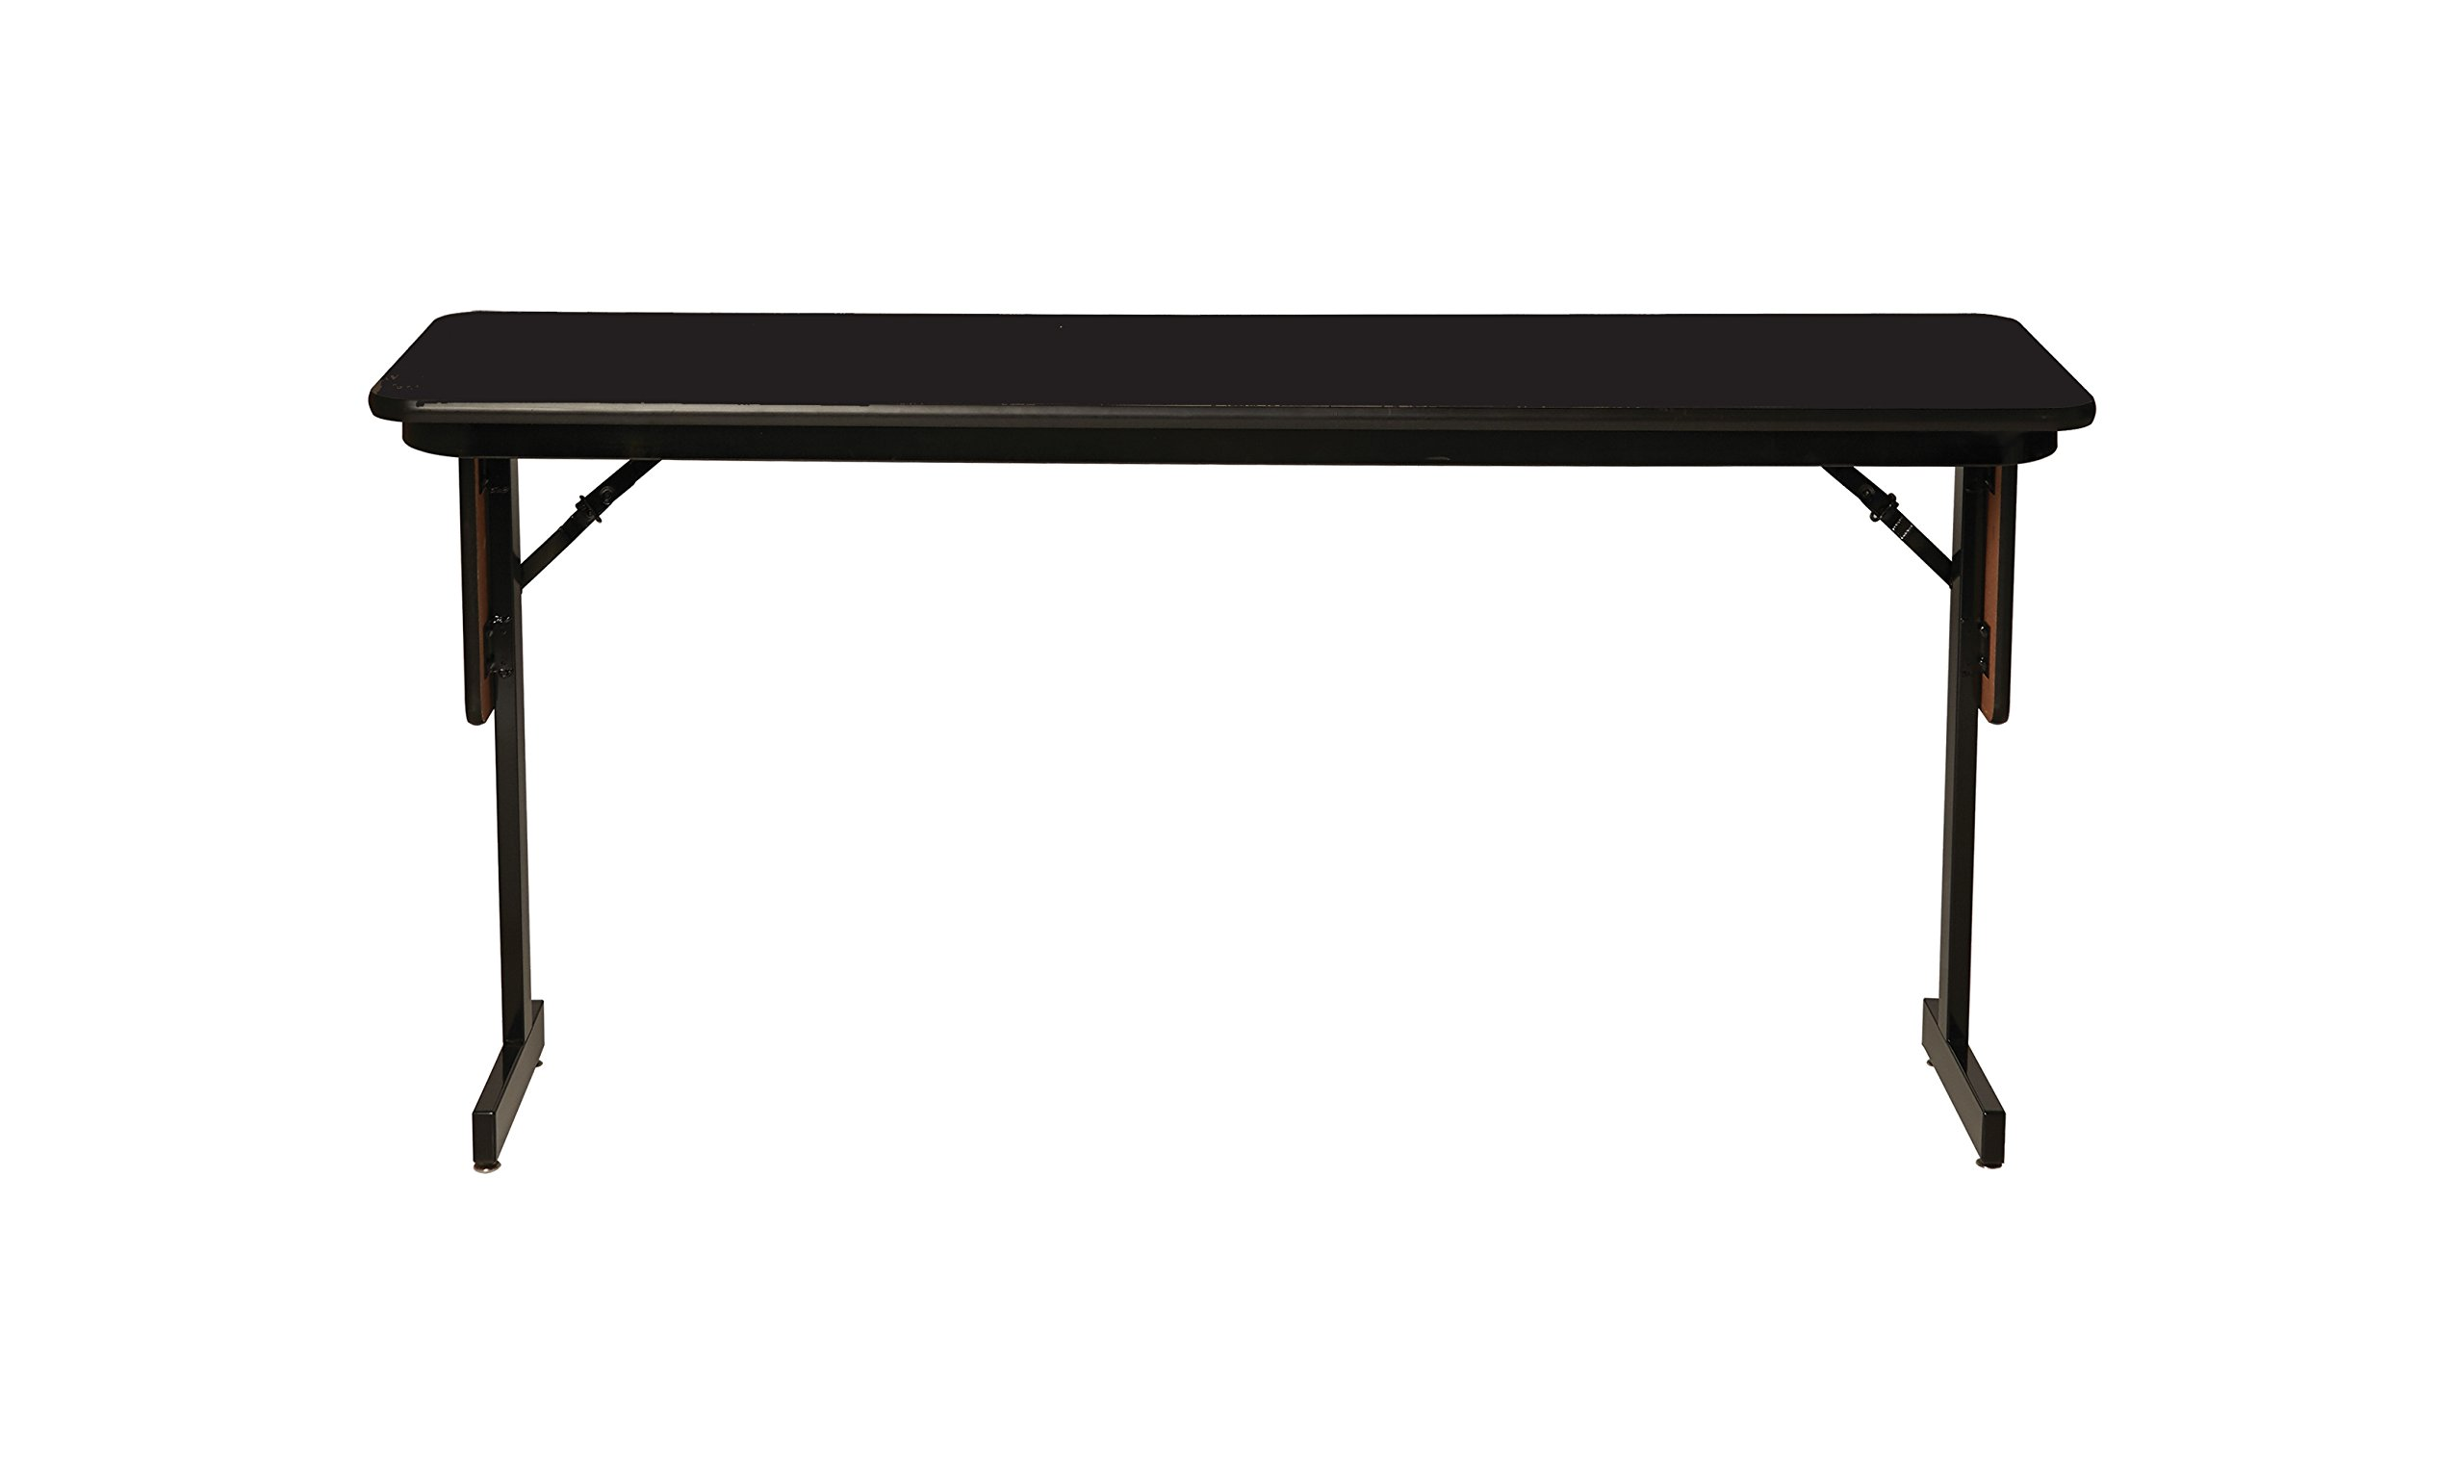 Correll SP1860PX-07 High Pressure Laminate Classroom, Training or Seminar Table with Folding Panel Leg, Rectangular, 18''x60'', Seats 2, Black Granite